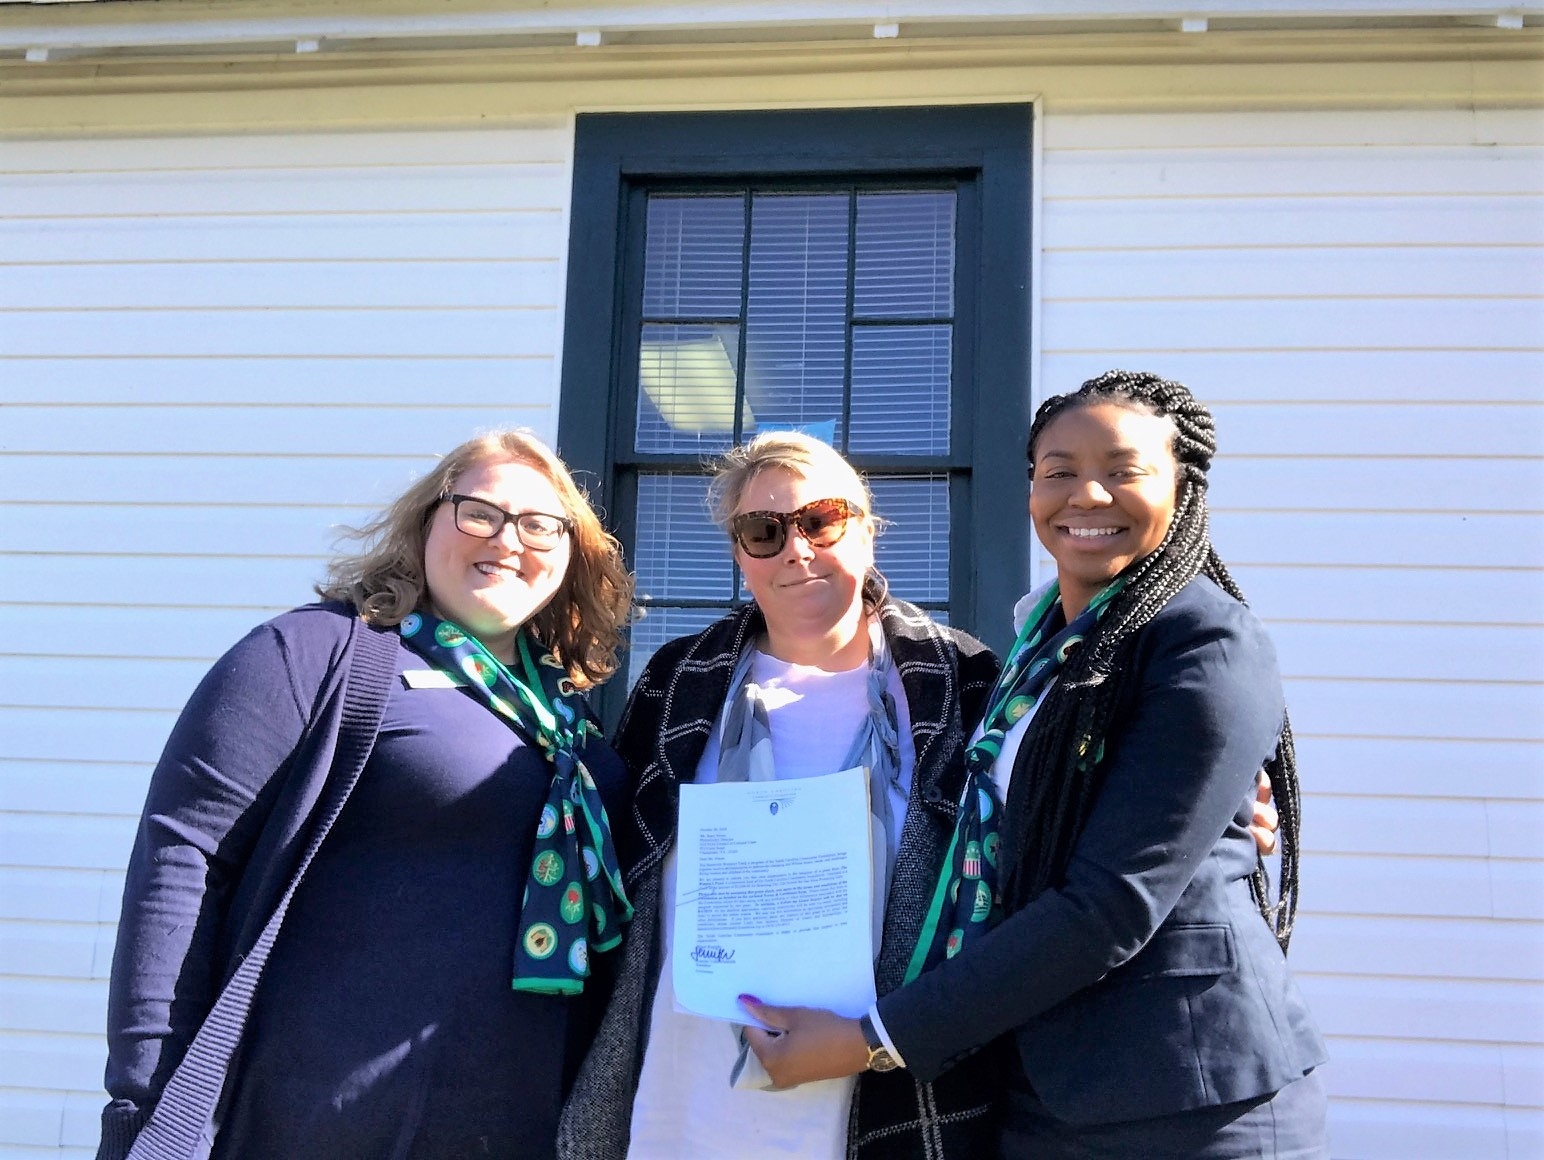 The Women's Fund of North Carolina awarded a grant to the Girl Scouts Council of Colonial Coast this year. Pictured accepting the grant are Jessica Woodyard (left) and Tameika Hopkins with NCCF Regional Director Natalie Peel.